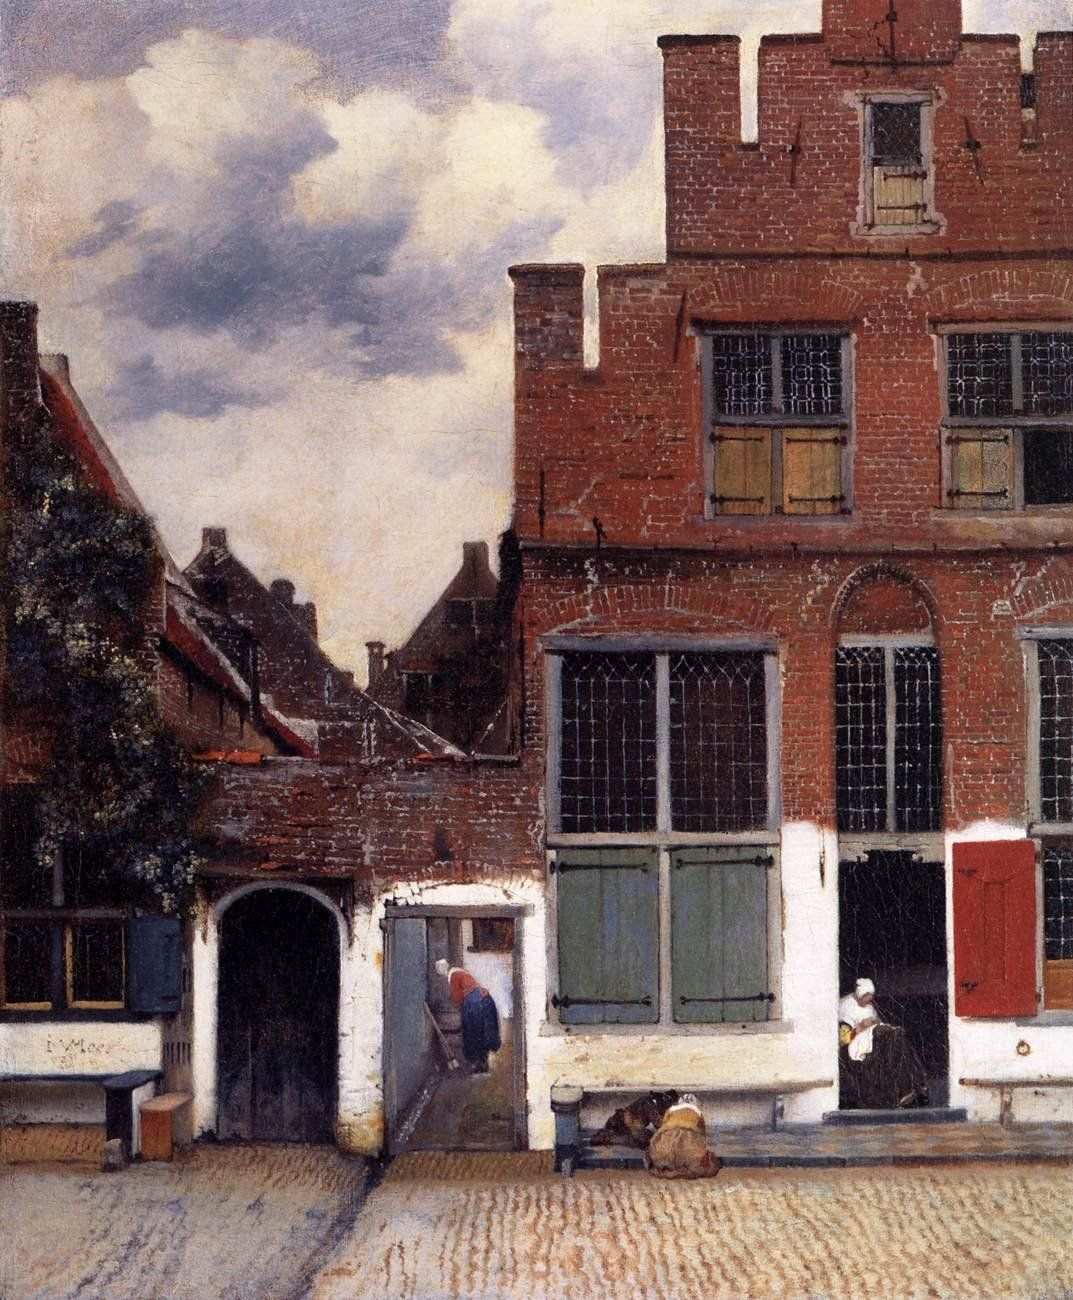 """View of Houses in Delft, known as """"The Little Street""""c. 1658; Oil on canvas, 54.3 x 44 cm; Rijksmuseum, Amsterdam.In a cobblestone street are two houses with a gate opening onto the passageway between them. A woman sits in an open doorway, busy sewing; two children are playing on the stoop. Soapy water is washing down a small runnel between the paving stones - probably the woman in the passageway has just scrubbed her part of the stoop. Vermeer has recorded this everyday scene with…"""